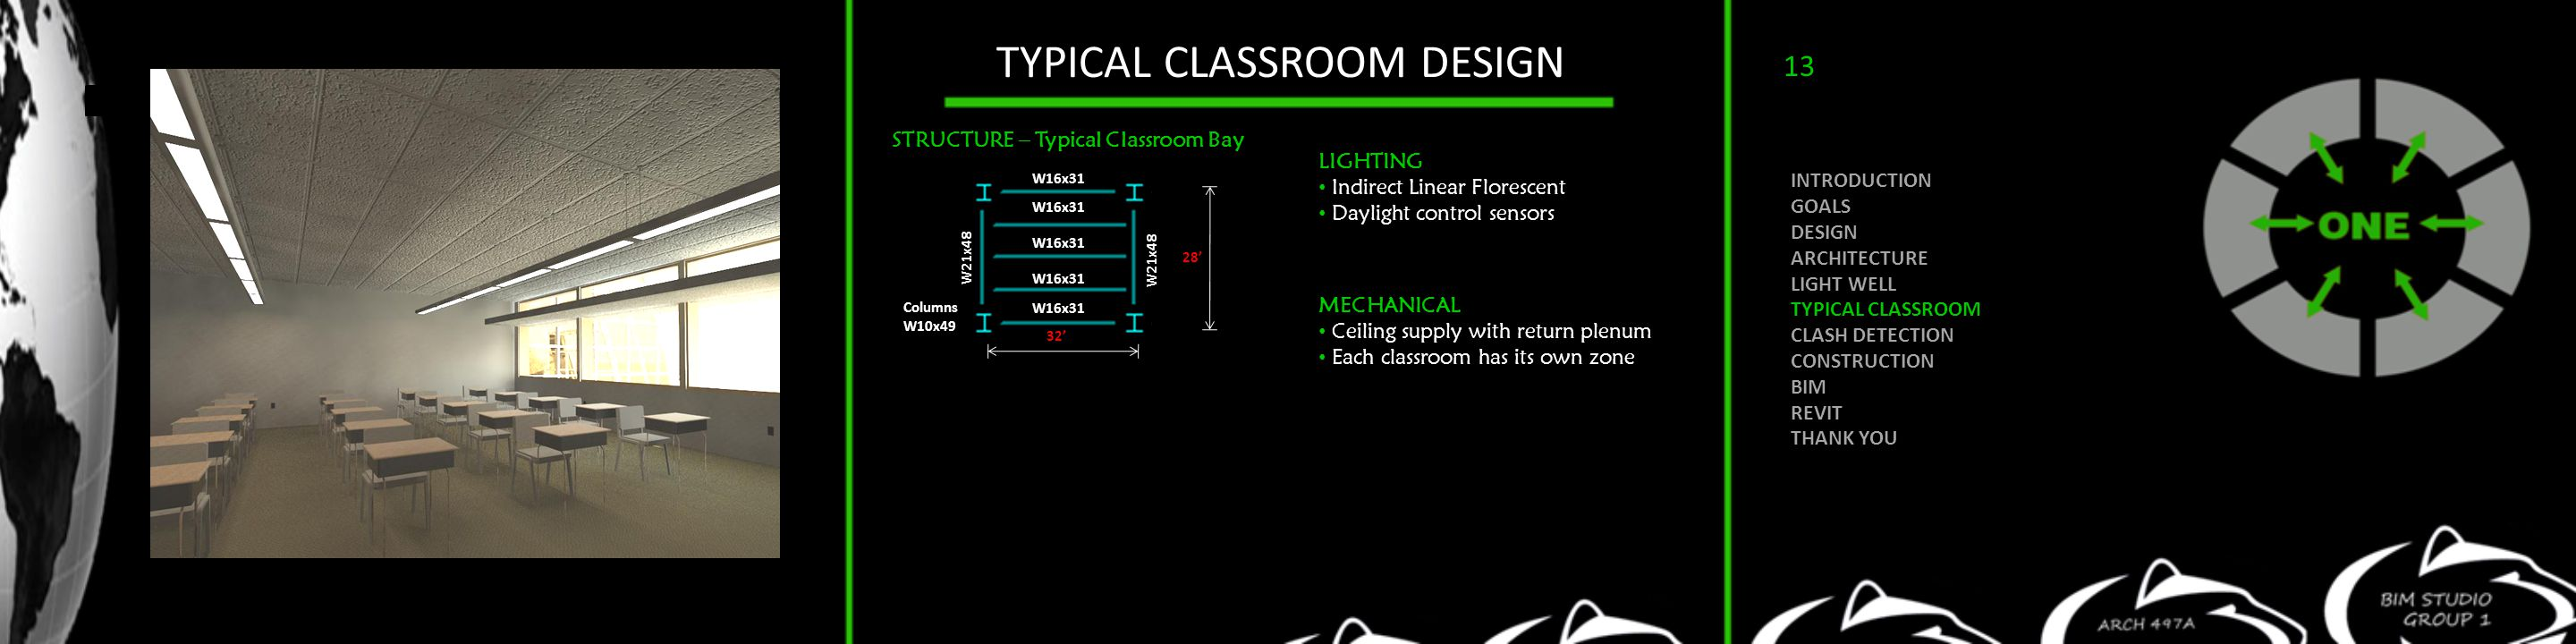 TYPICAL CLASSROOM DESIGN W16x31 STRUCTURE – Typical Classroom Bay W16x31 W21x48 Columns W10x49 32' 28' MECHANICAL Ceiling supply with return plenum Each classroom has its own zone LIGHTING Indirect Linear Florescent Daylight control sensors INTRODUCTION GOALS DESIGN ARCHITECTURE LIGHT WELL TYPICAL CLASSROOM CLASH DETECTION CONSTRUCTION BIM REVIT THANK YOU 13